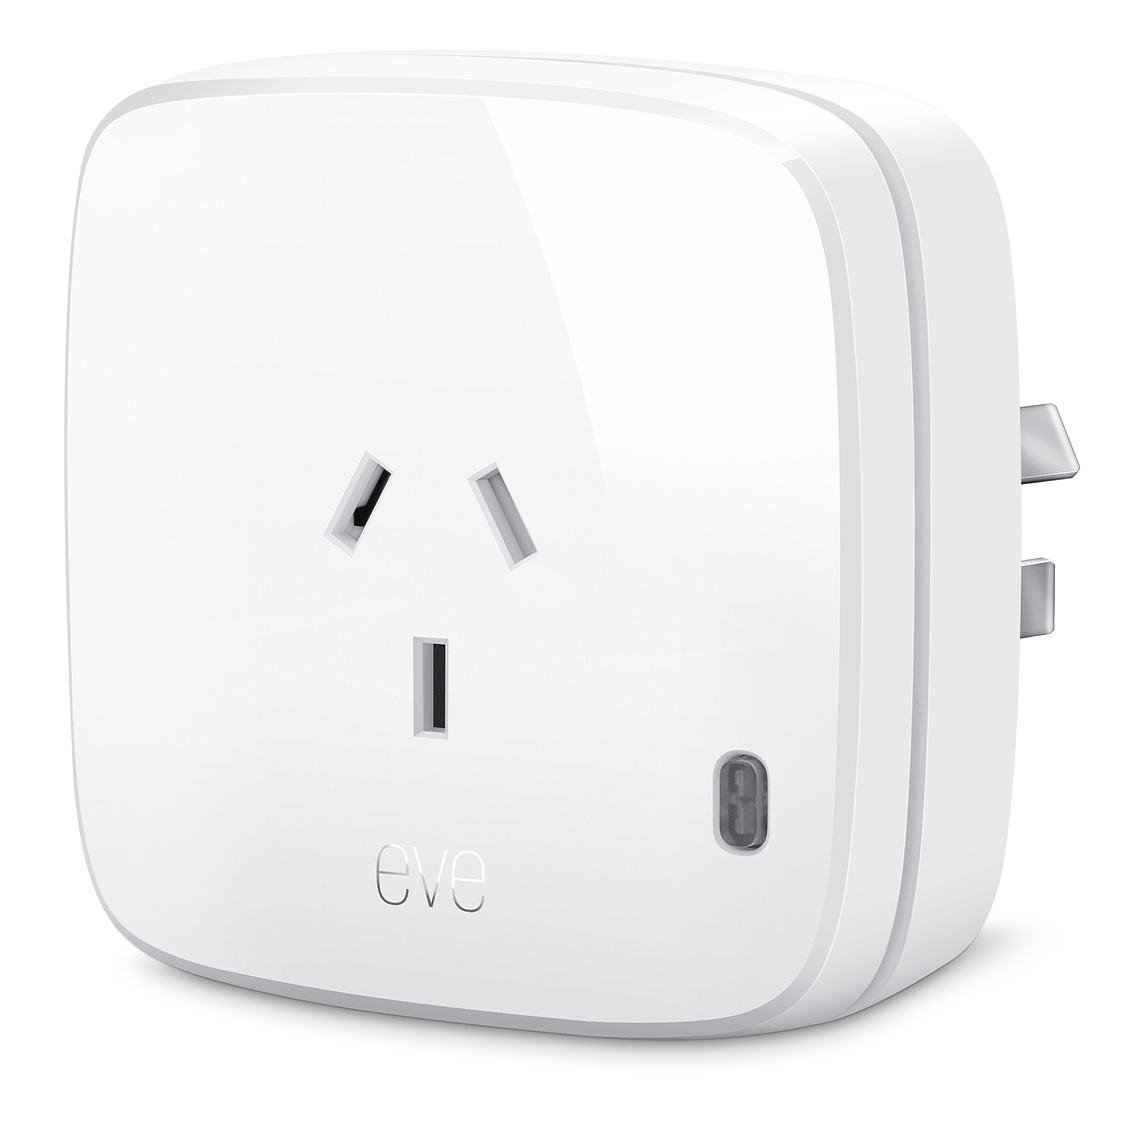 Eve Energy - 100-240V, 1840W, Bluetooth LE, manual switch, consumption monitoring.Buy: Apple, Direct